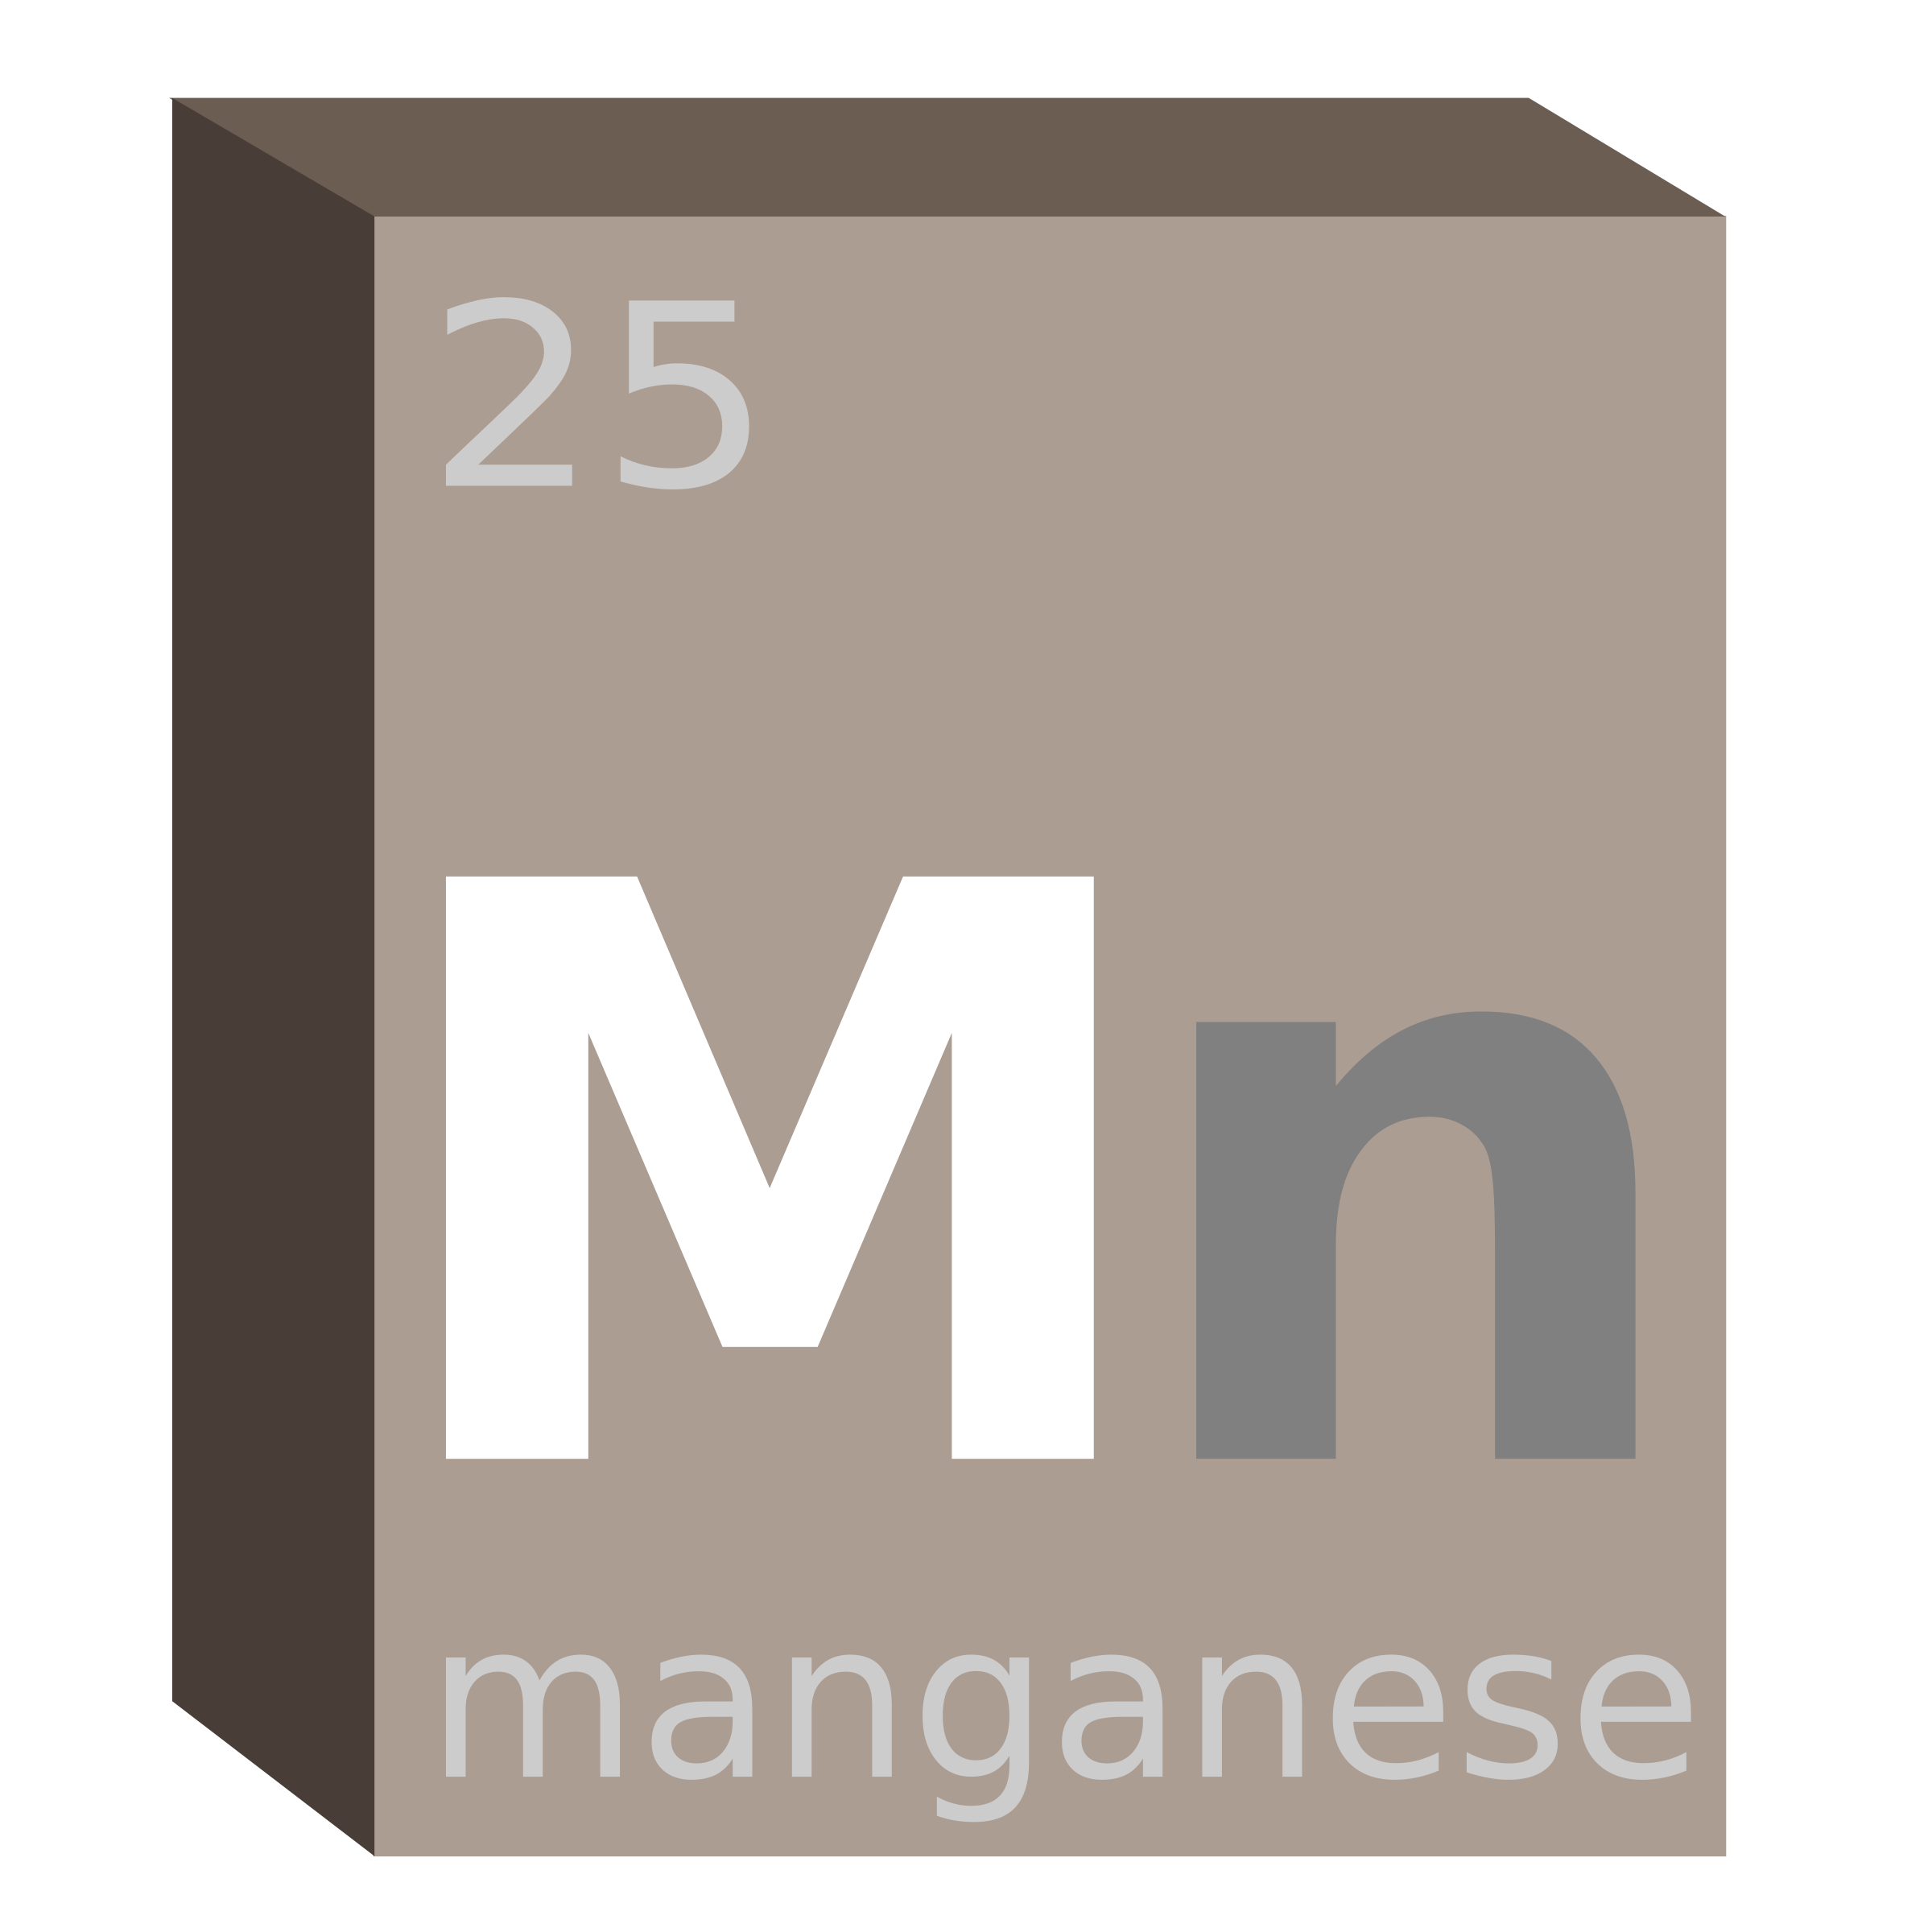 Manganese (Mn) Block- Chemistry by oldifluff